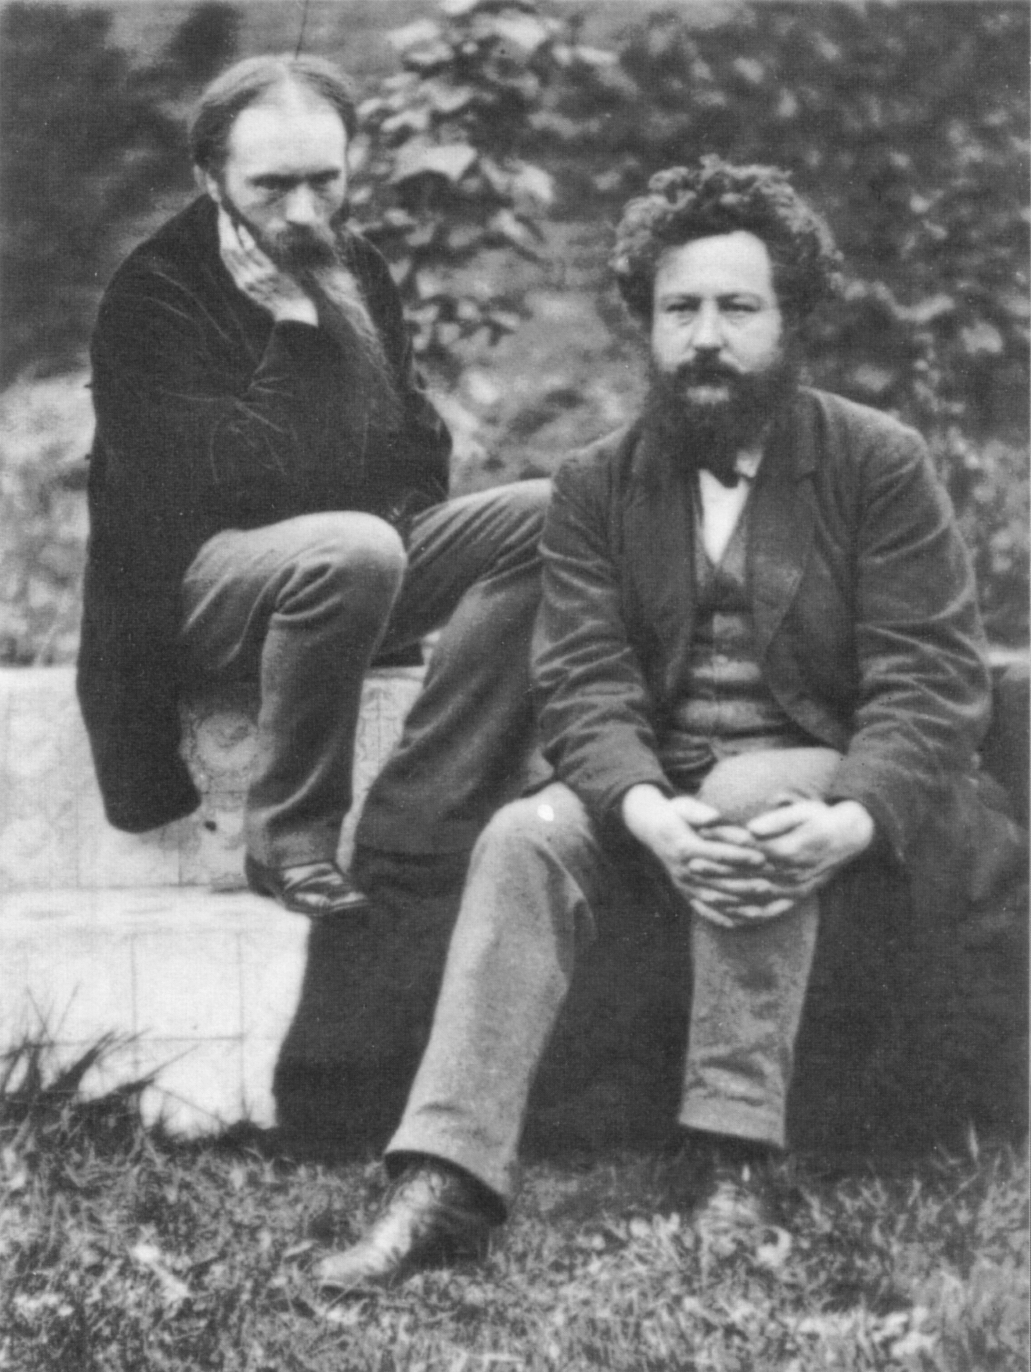 Burne-Jones with William Morris, 1874, by Frederick Hollyer.